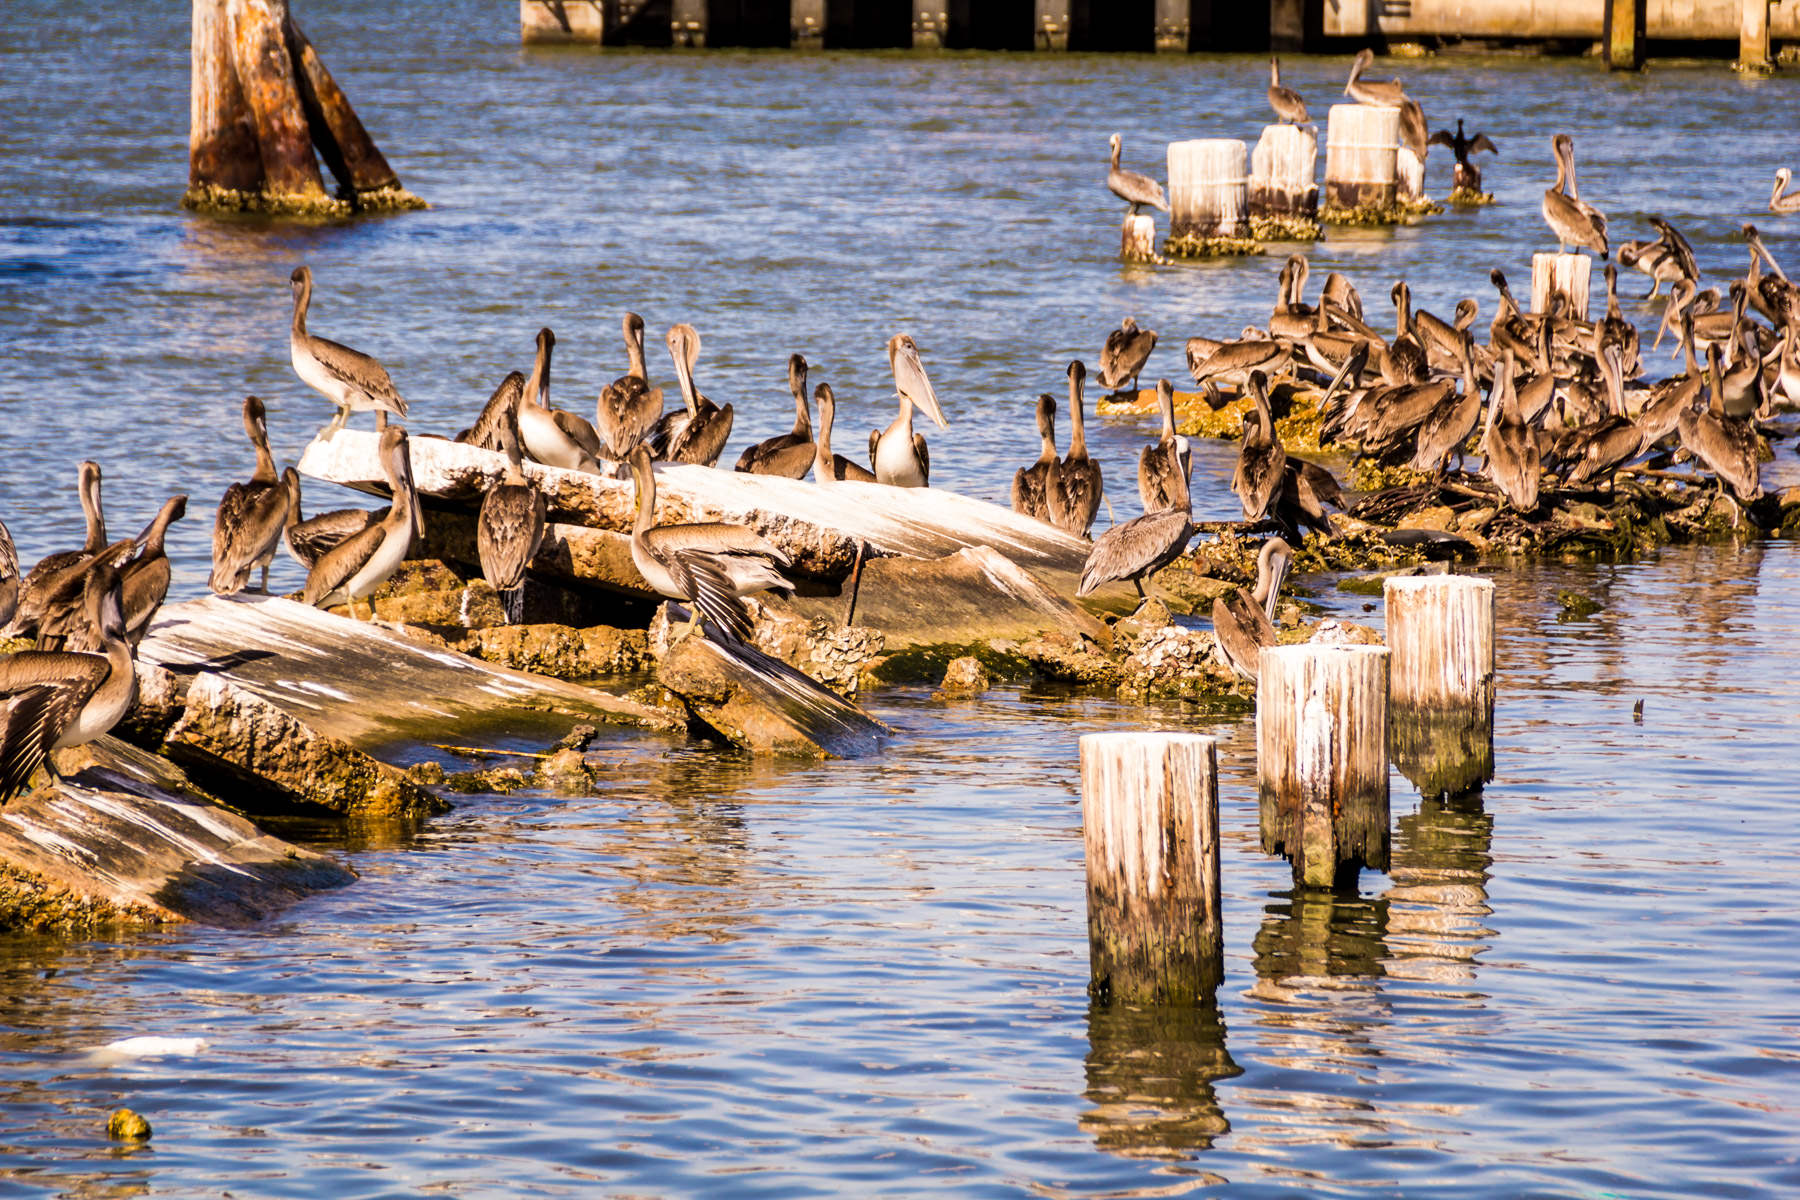 A flock of pelicans in Galveston, Texas.